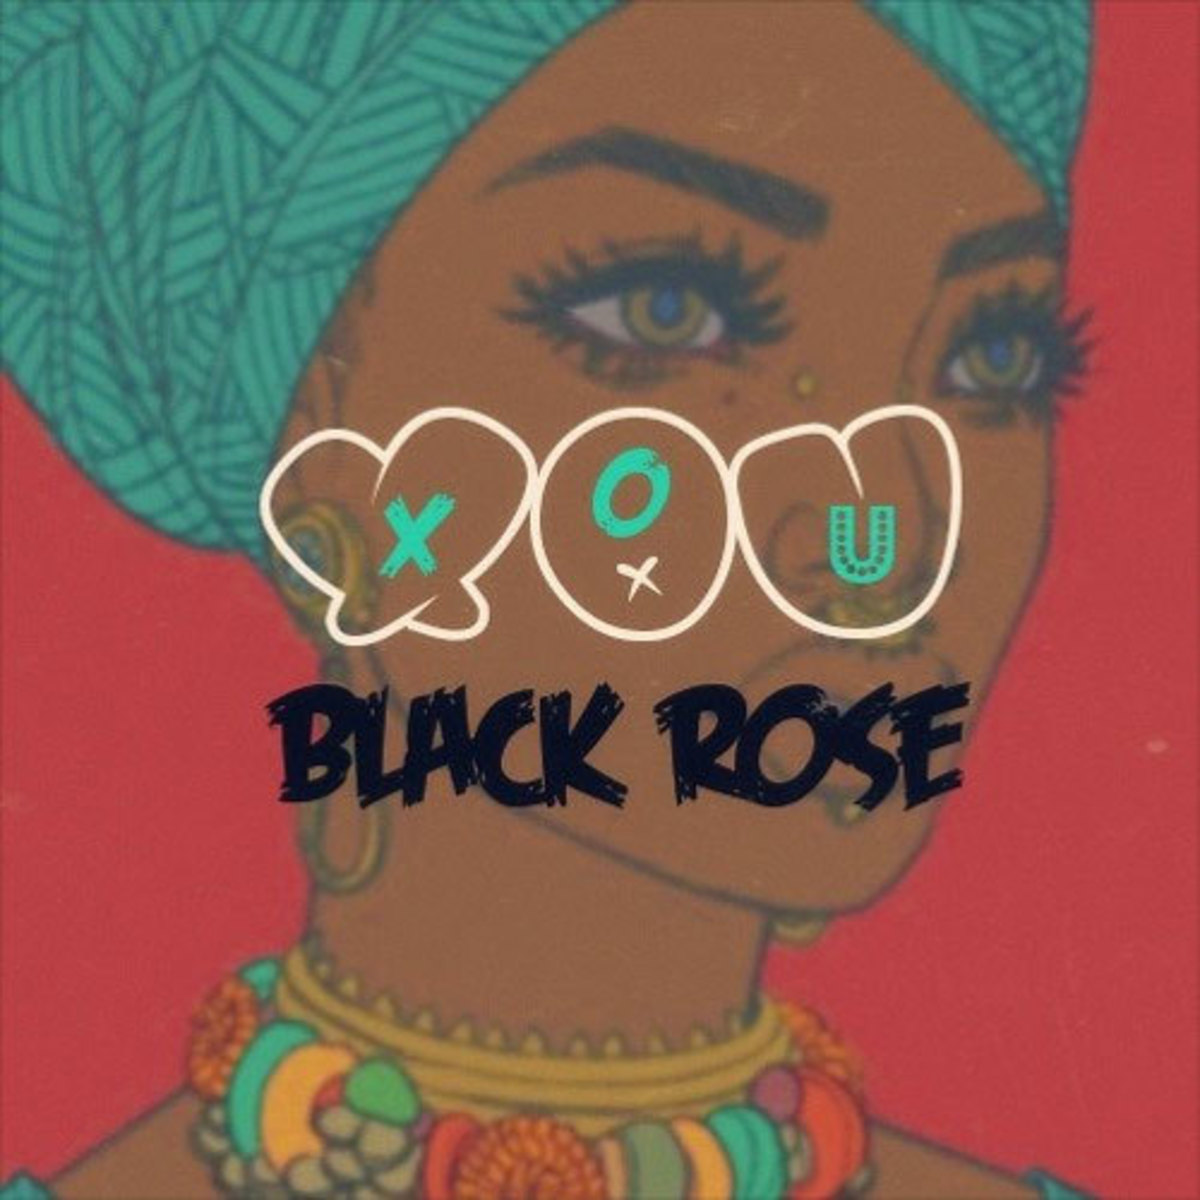 xou-black-rose.jpg